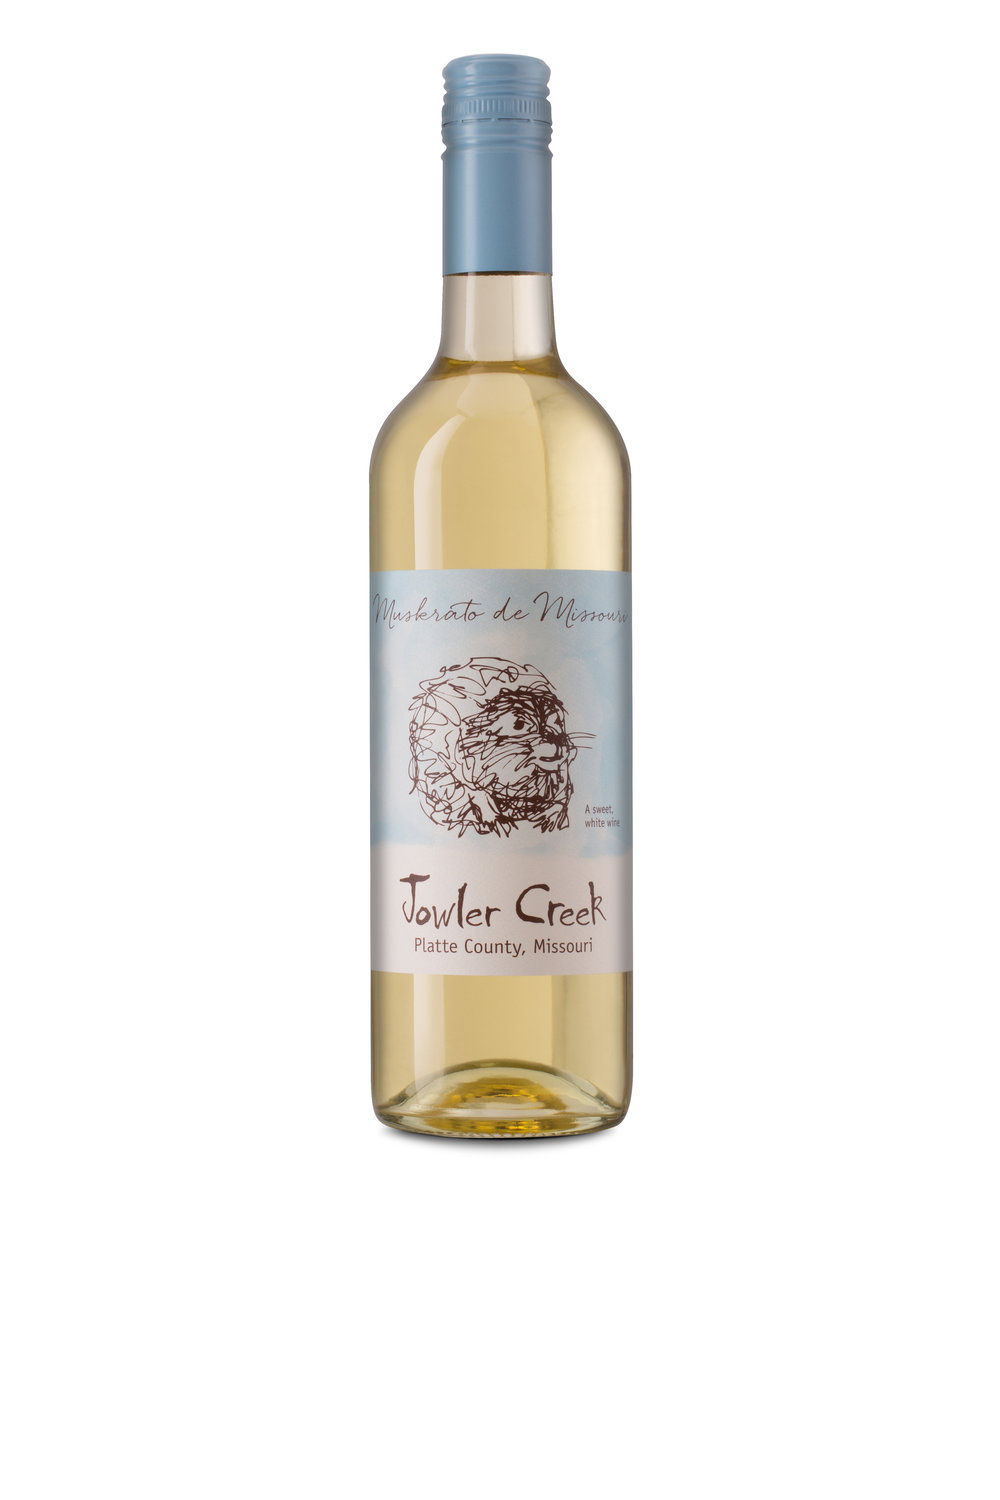 Jowler Creek Winery  makes the best Moscato or Moscato d Asti style wine in Missouri and the Midwest. Come  taste  this delicious Moscato wine in  Jowler Creek Winery's   sustainable   winetasting  room located near Weston Missouri, Kansas City Missouri and Platte City Missouri.